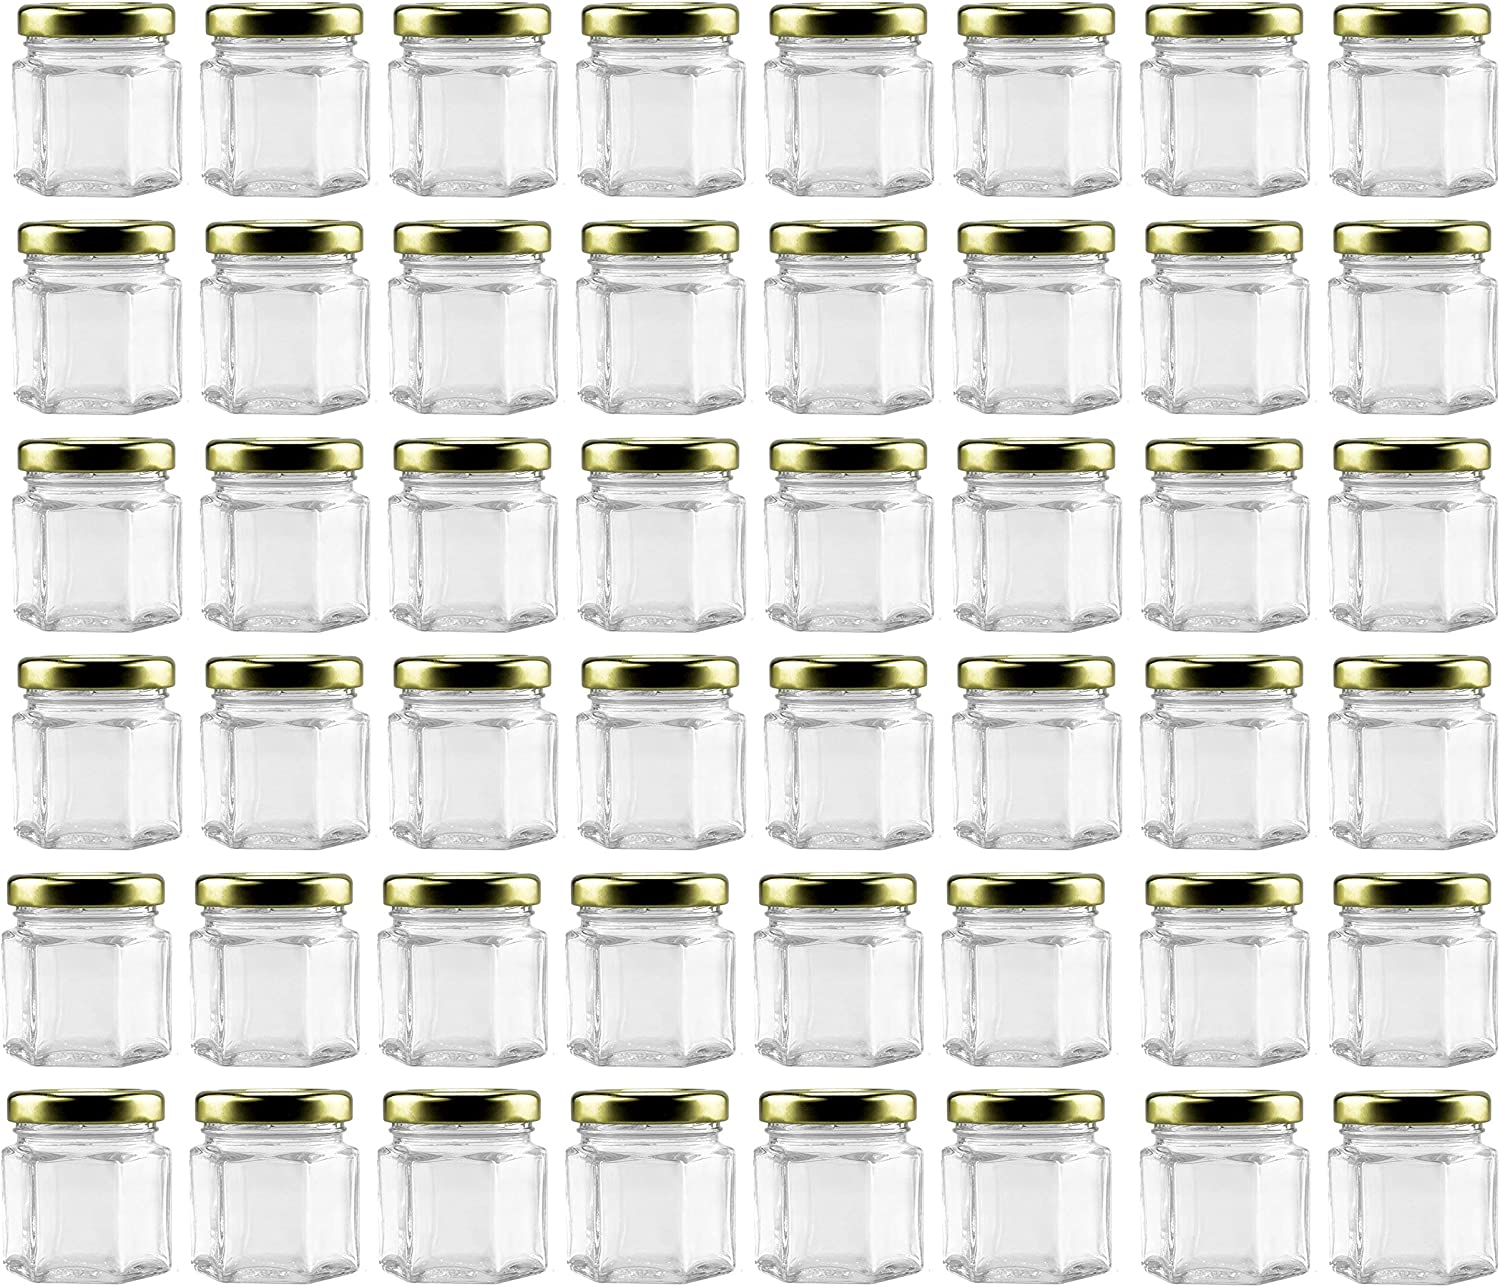 Mini Hexagon Glass Jars (1.5oz, 48-Pack); Tiny Hex Jars with Gold Lids for Spices, Gifts, Party Favors, DIY and More, 3-Tablespoon Capacity